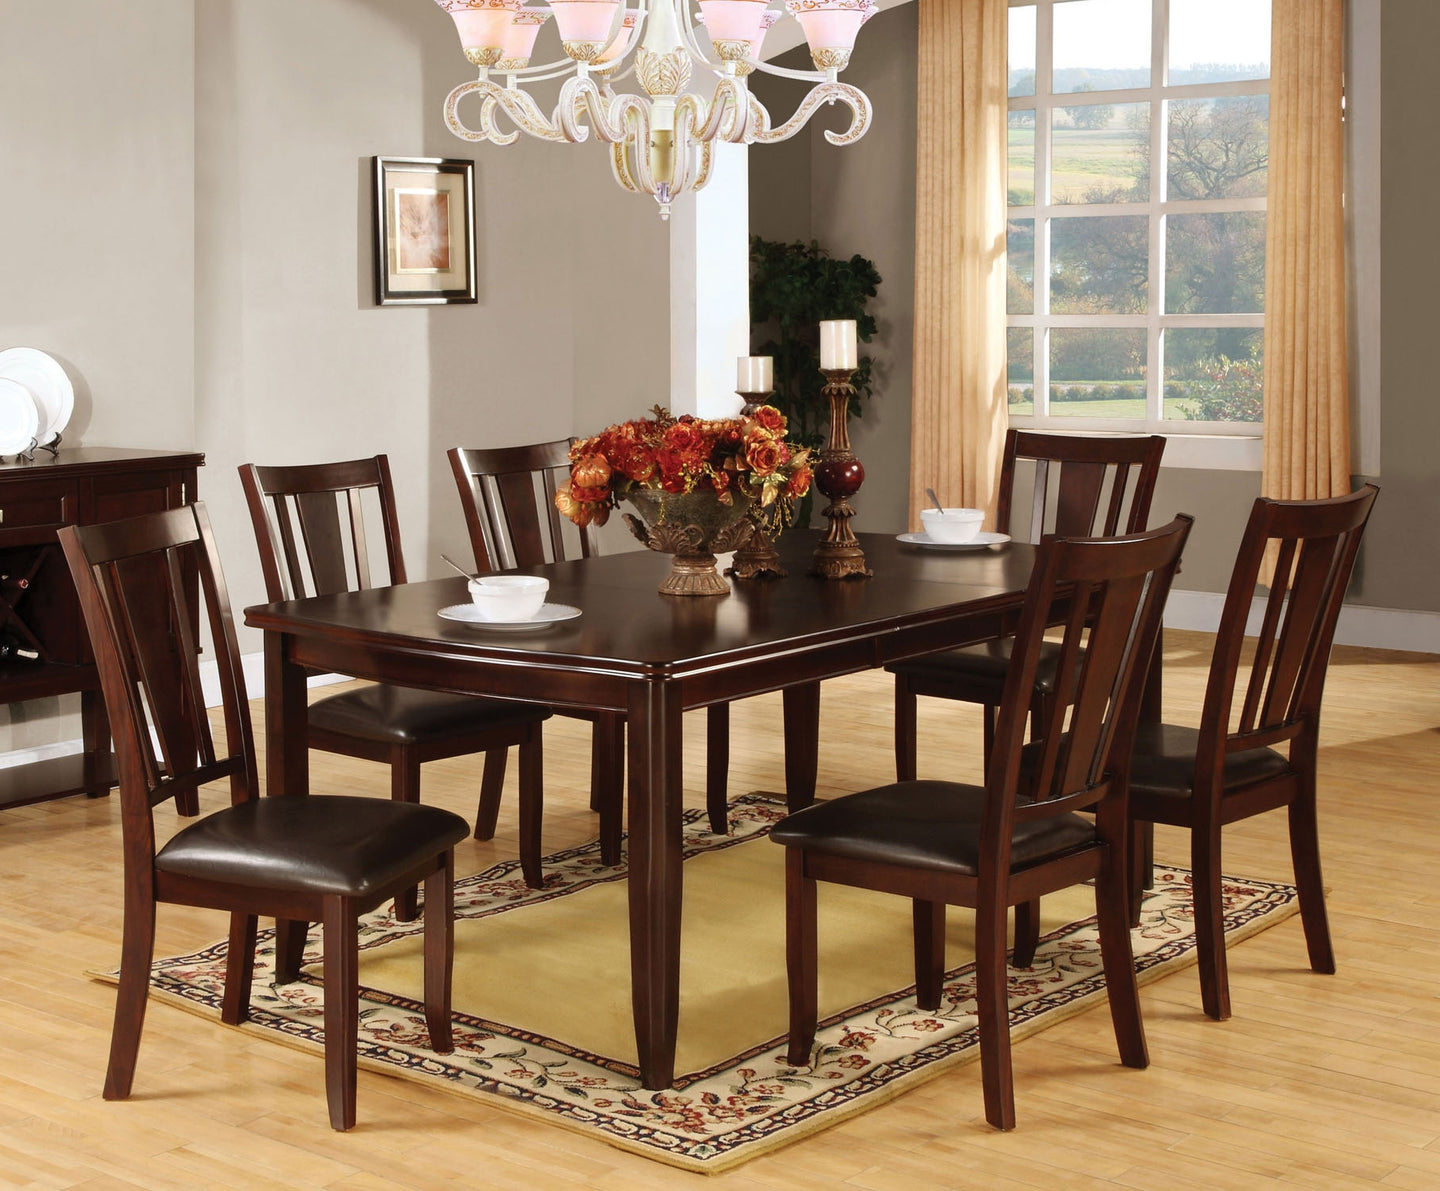 Furniture Of America Edgewood I Espresso Wood Finish 7 Piece Dining Table Set